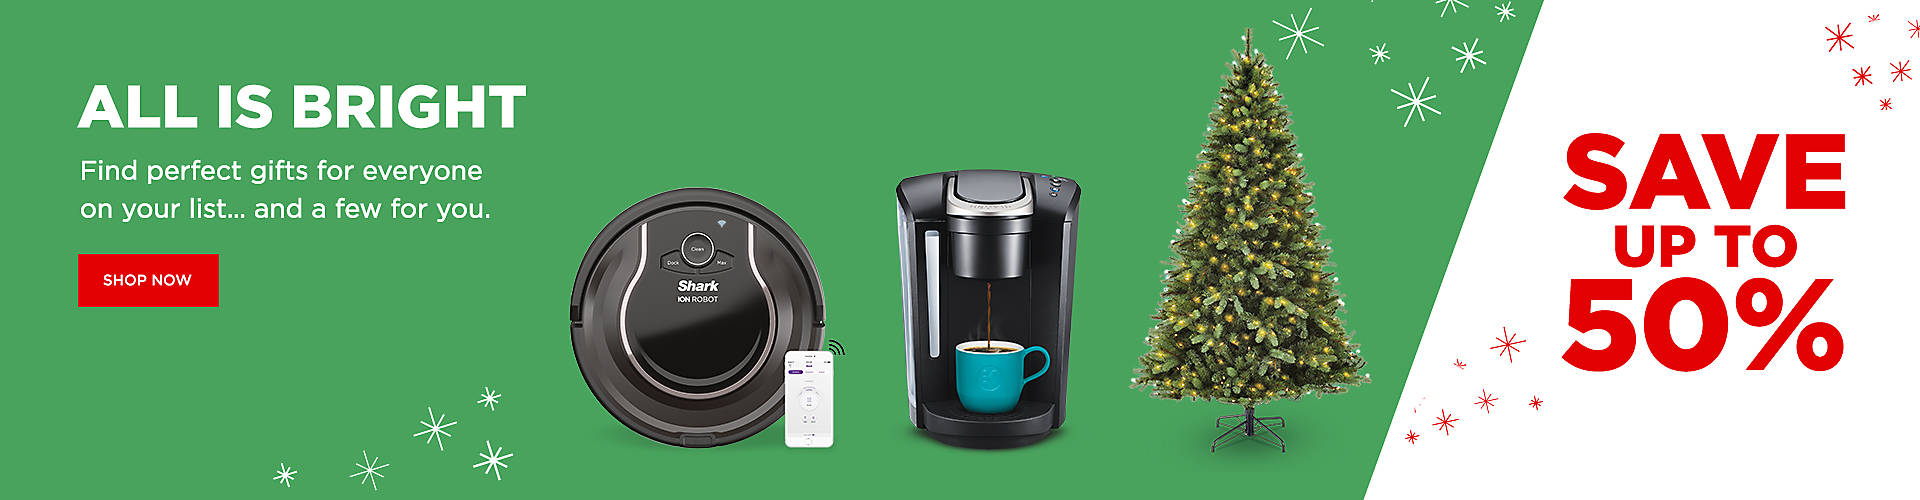 ALL IS BRIGHT    Find perfect gifts for everyone on your list… and a few for you.    Save up to 50%